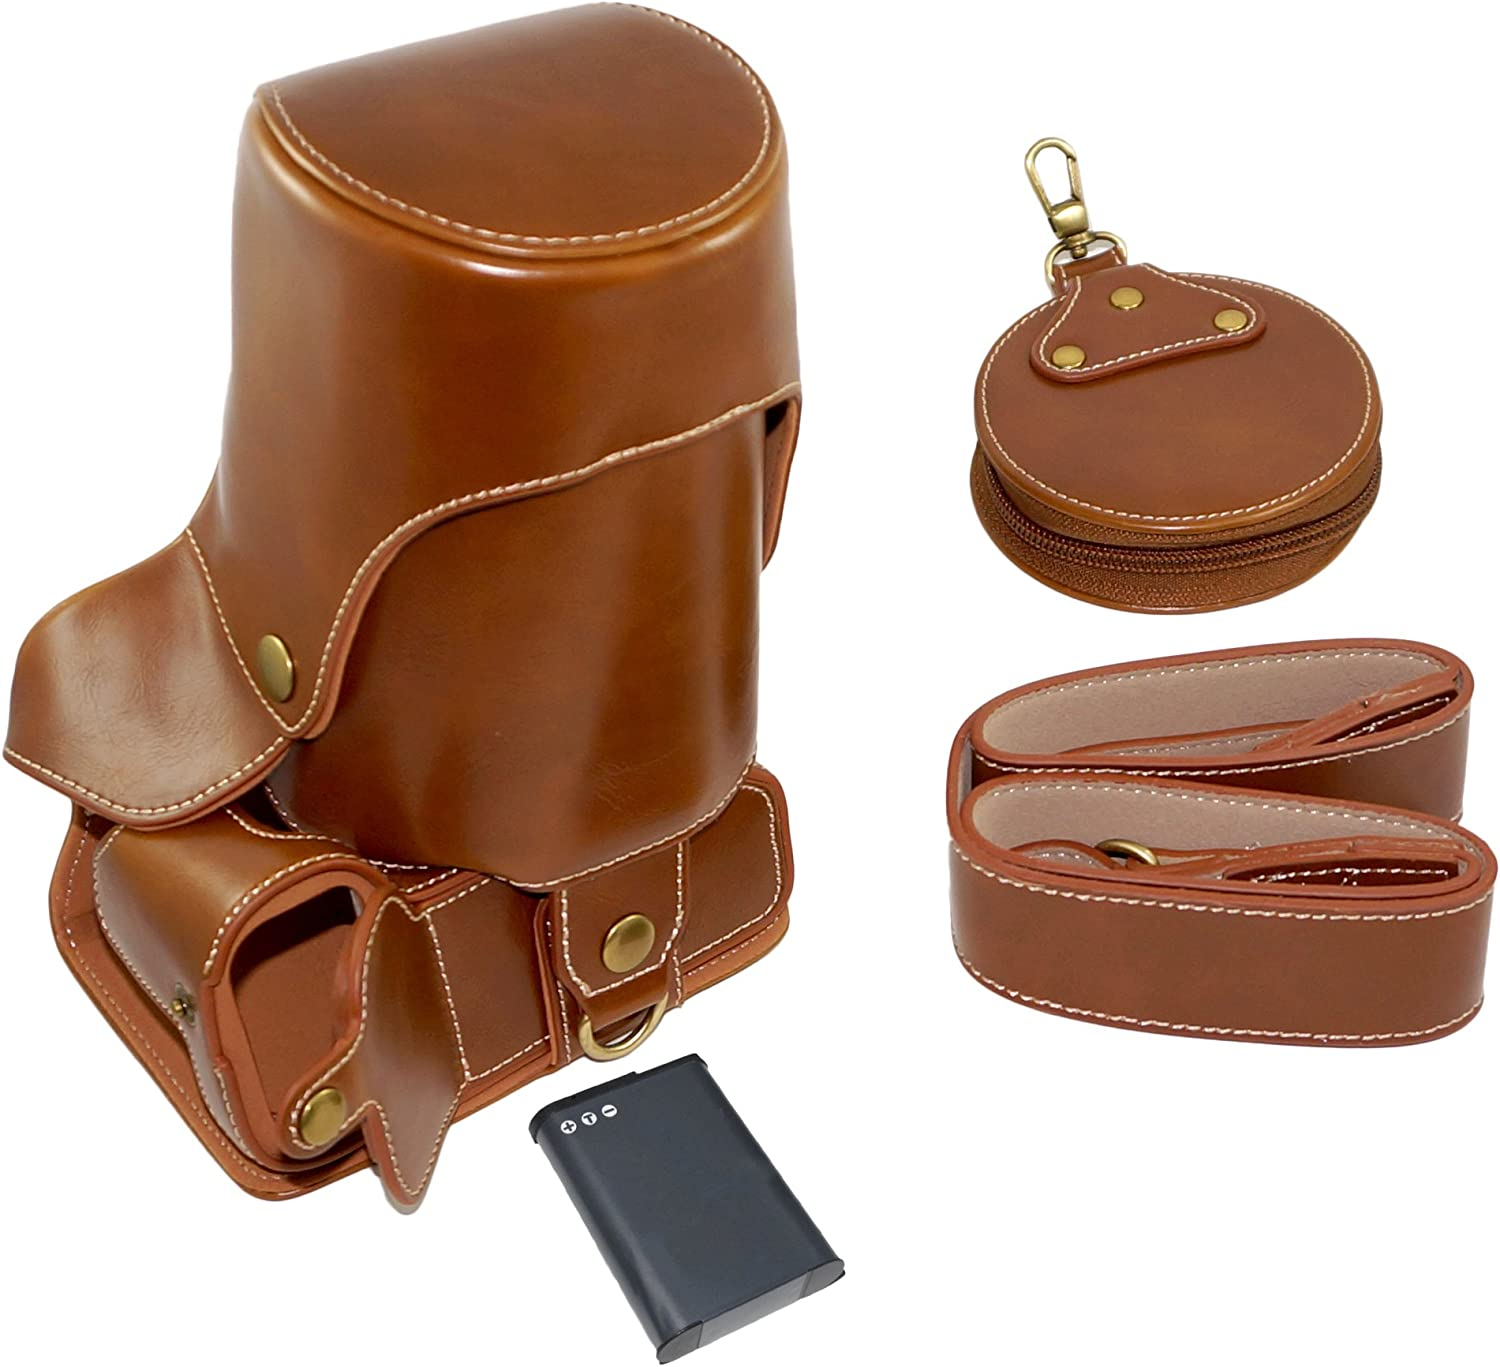 Full Protection Bottom Opening Version Protective PU Leather Camera Case Bag with Tripod Design Compatible For Canon EOS 700D with Shoulder Neck Strap Belt and Storage Card Case Brown